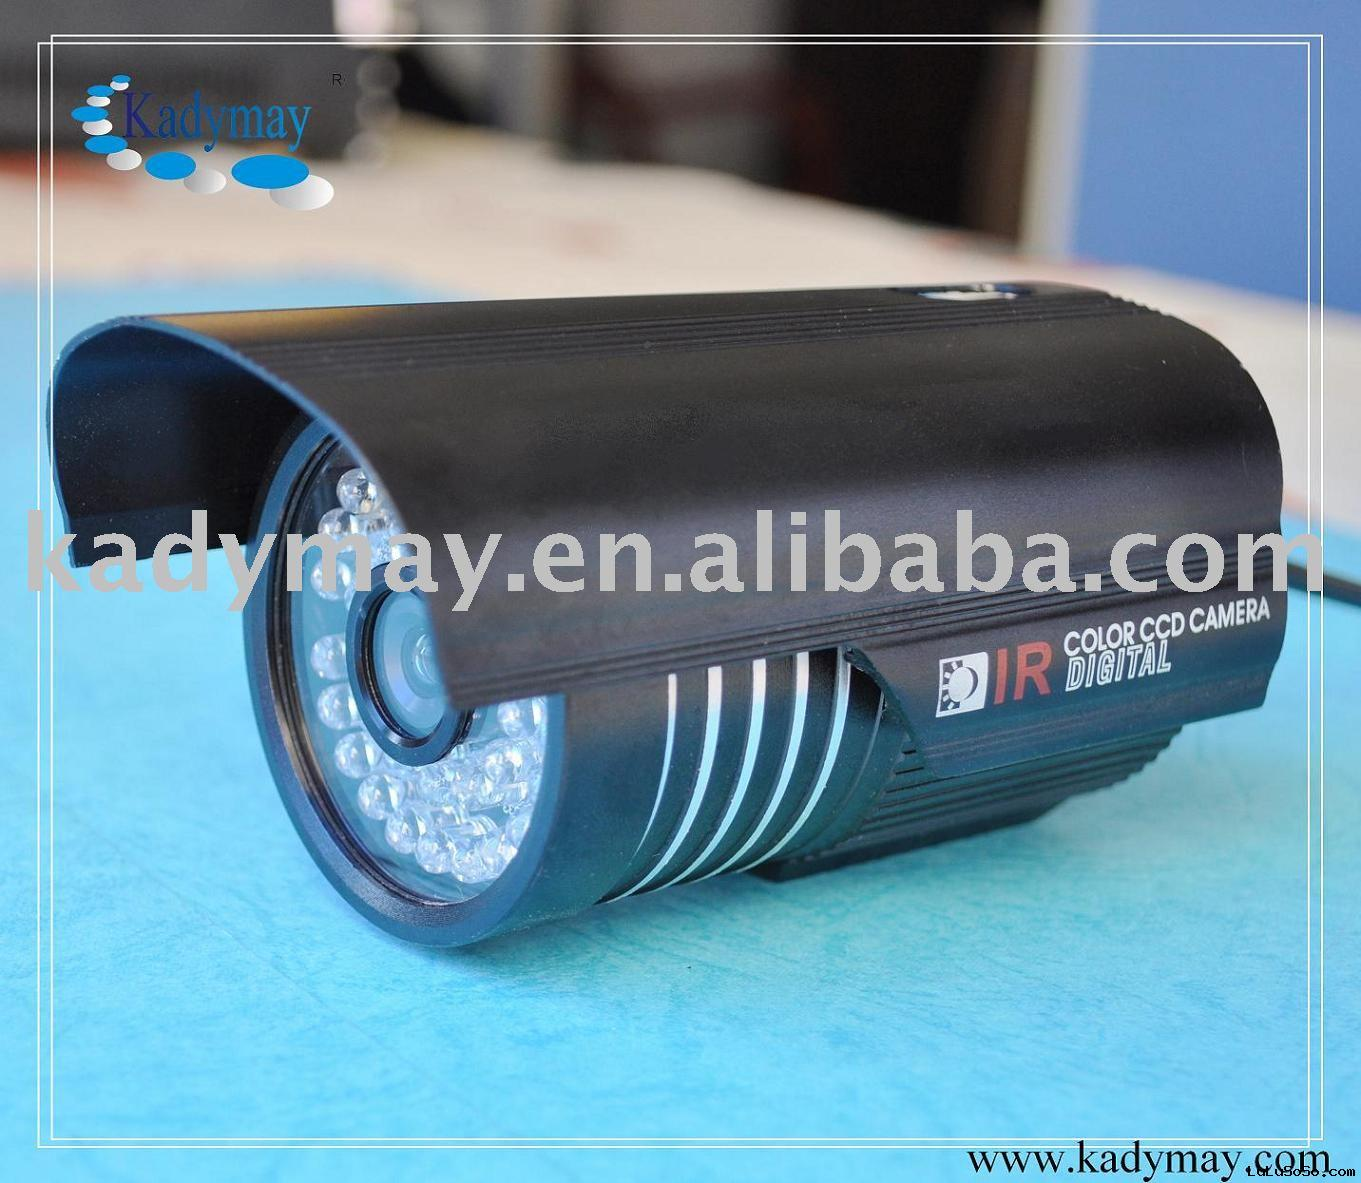 KDM-6224 CCTV Security Camera